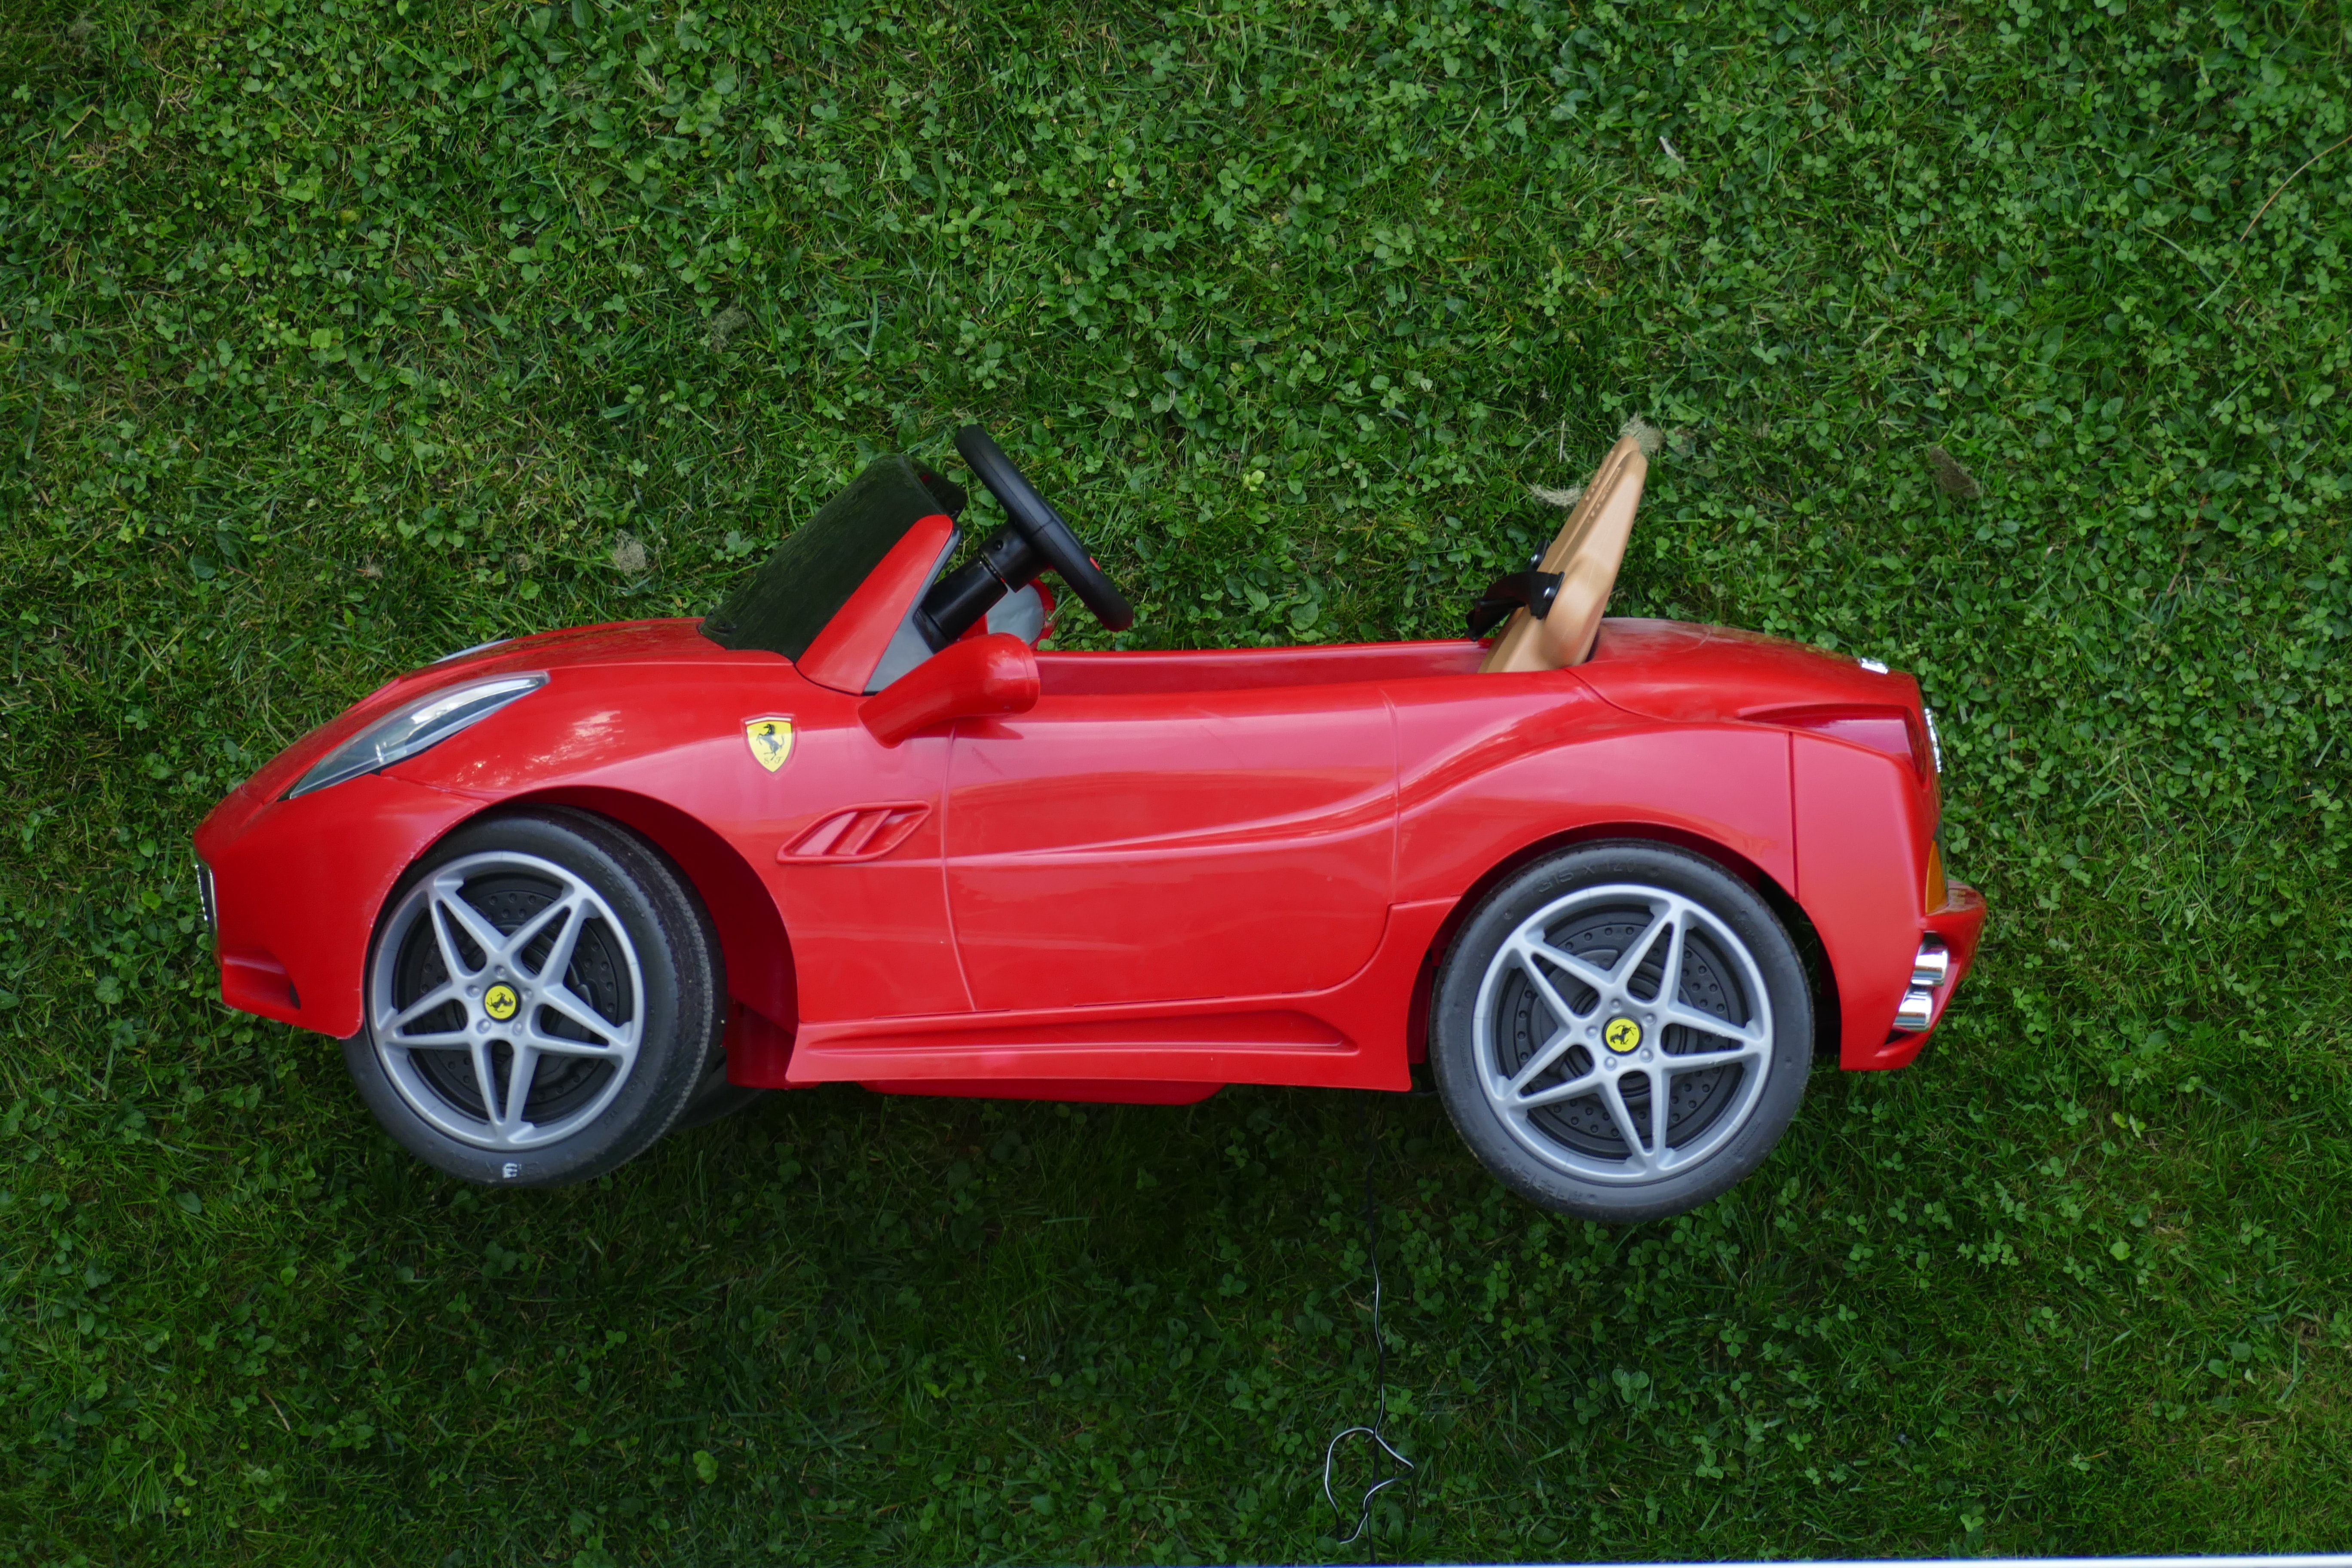 red Ferrari ride-on car toy